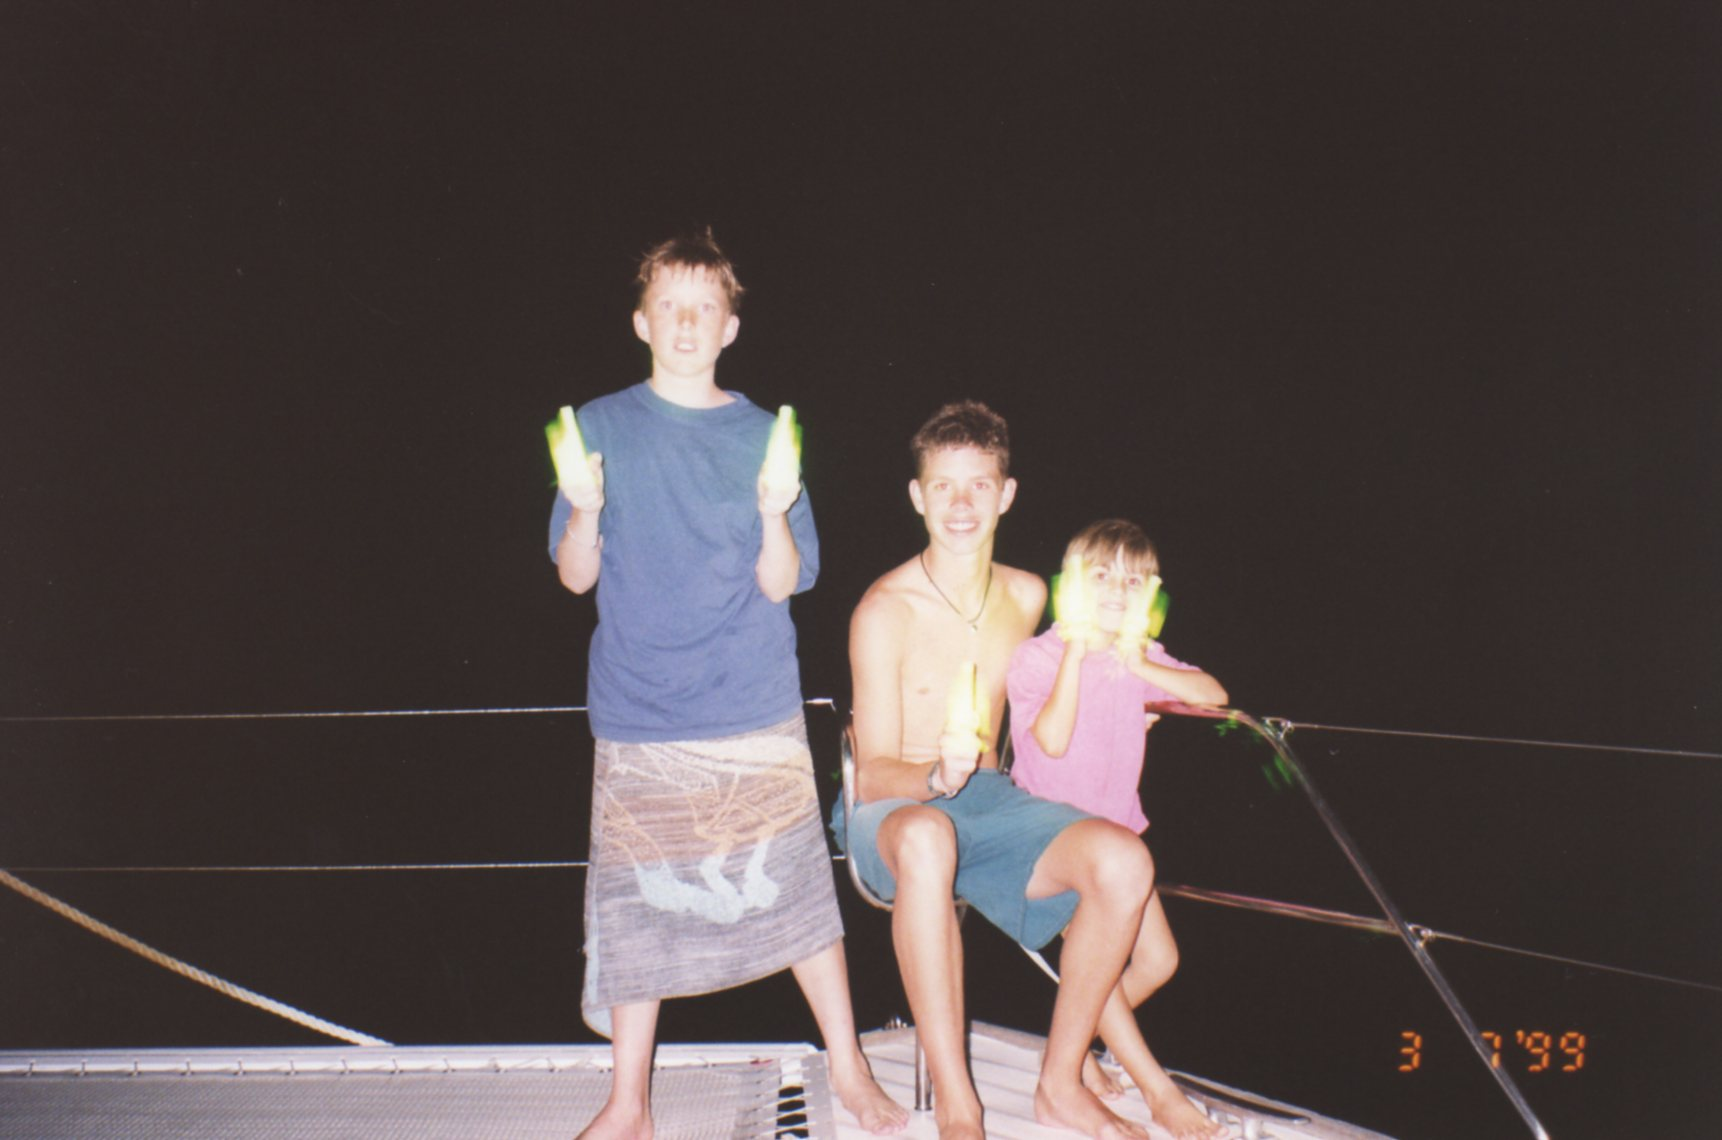 After night dive playing with glow sticks